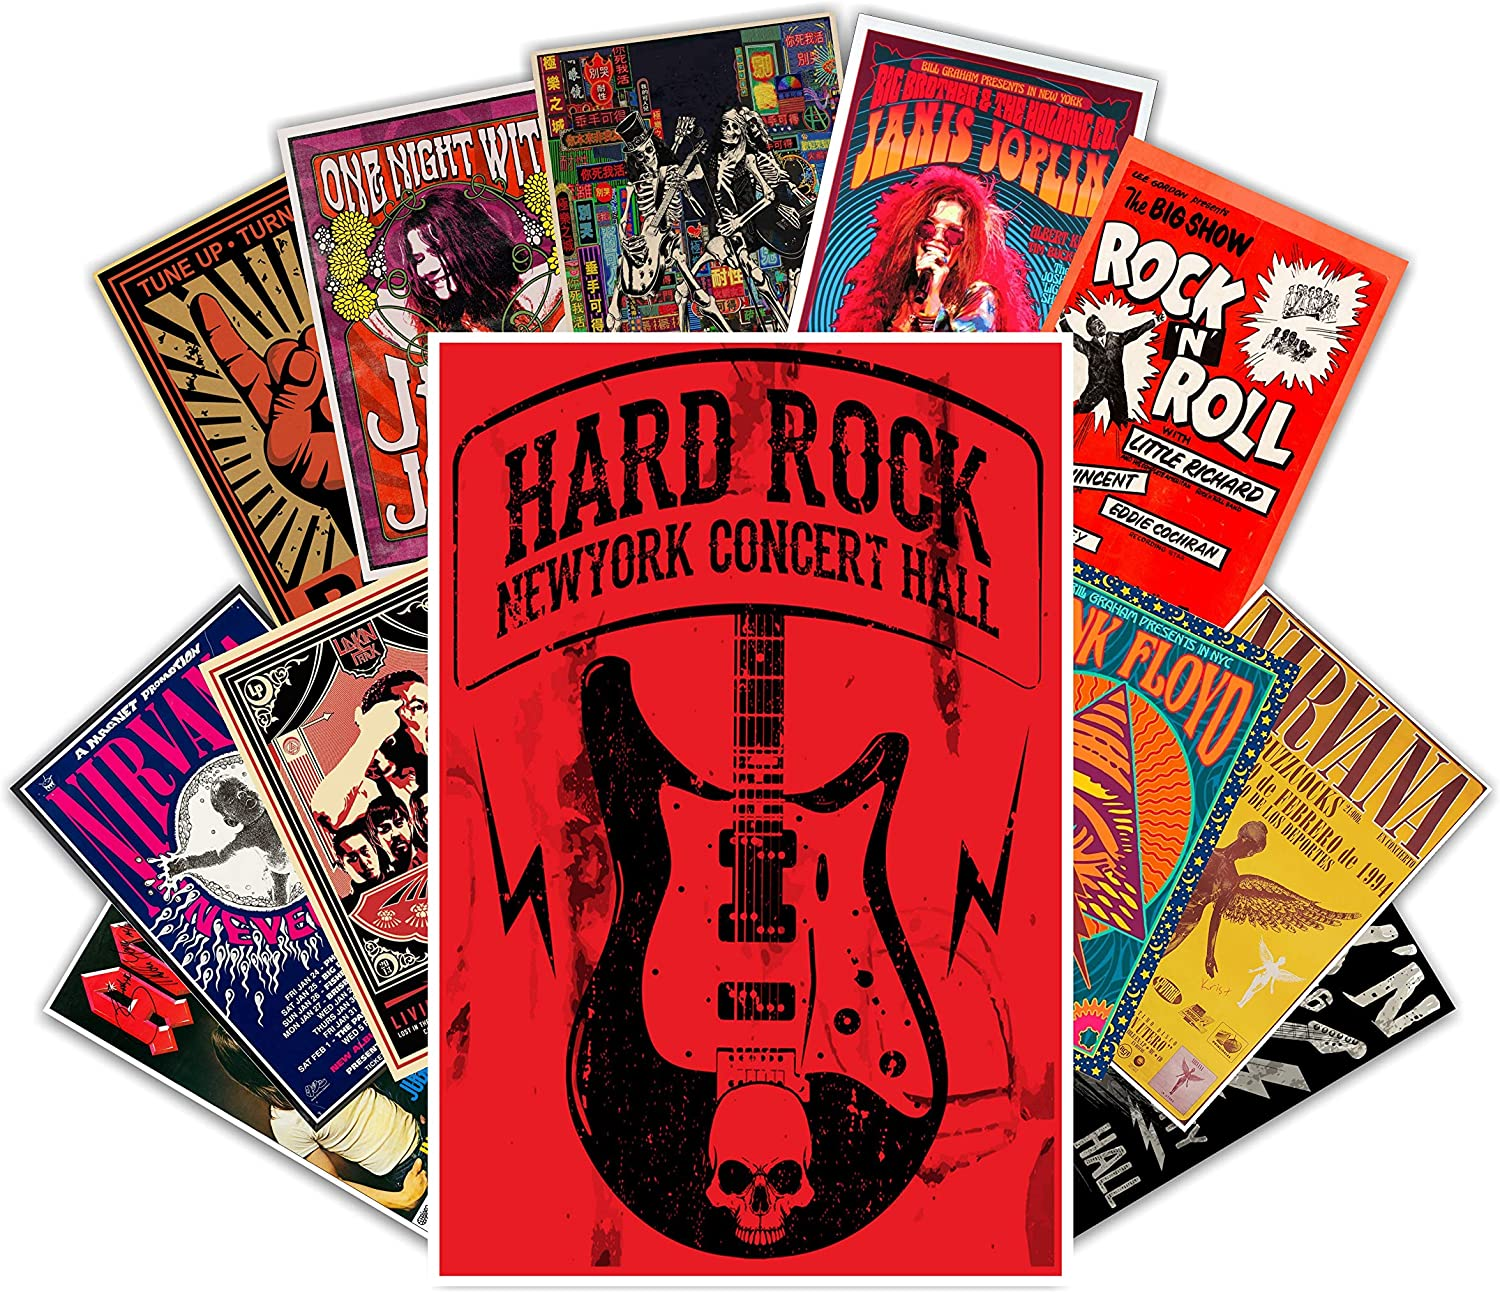 HK Studio Vintage Posters of Rock Music | Self-Adhesive Vinyl Decal Indie Posters for Room Aesthetic 90s | Old School, Retro Rock Band Posters | Classic Rock Poster Wall Collage Kit 7.8